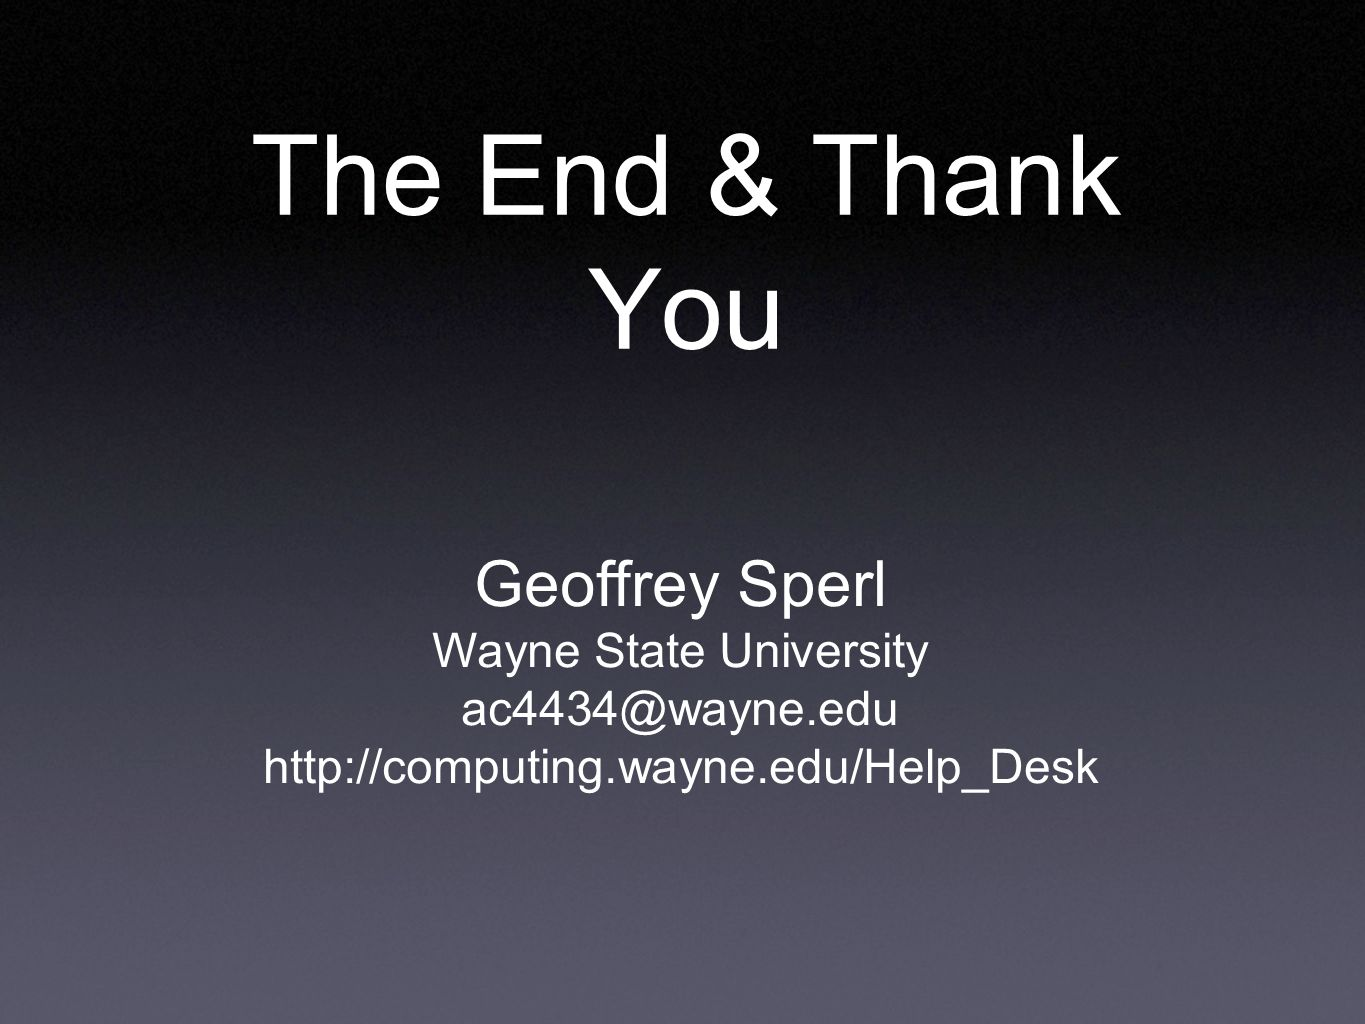 The End & Thank You Geoffrey Sperl Wayne State University ac4434@wayne.edu http://computing.wayne.edu/Help_Desk